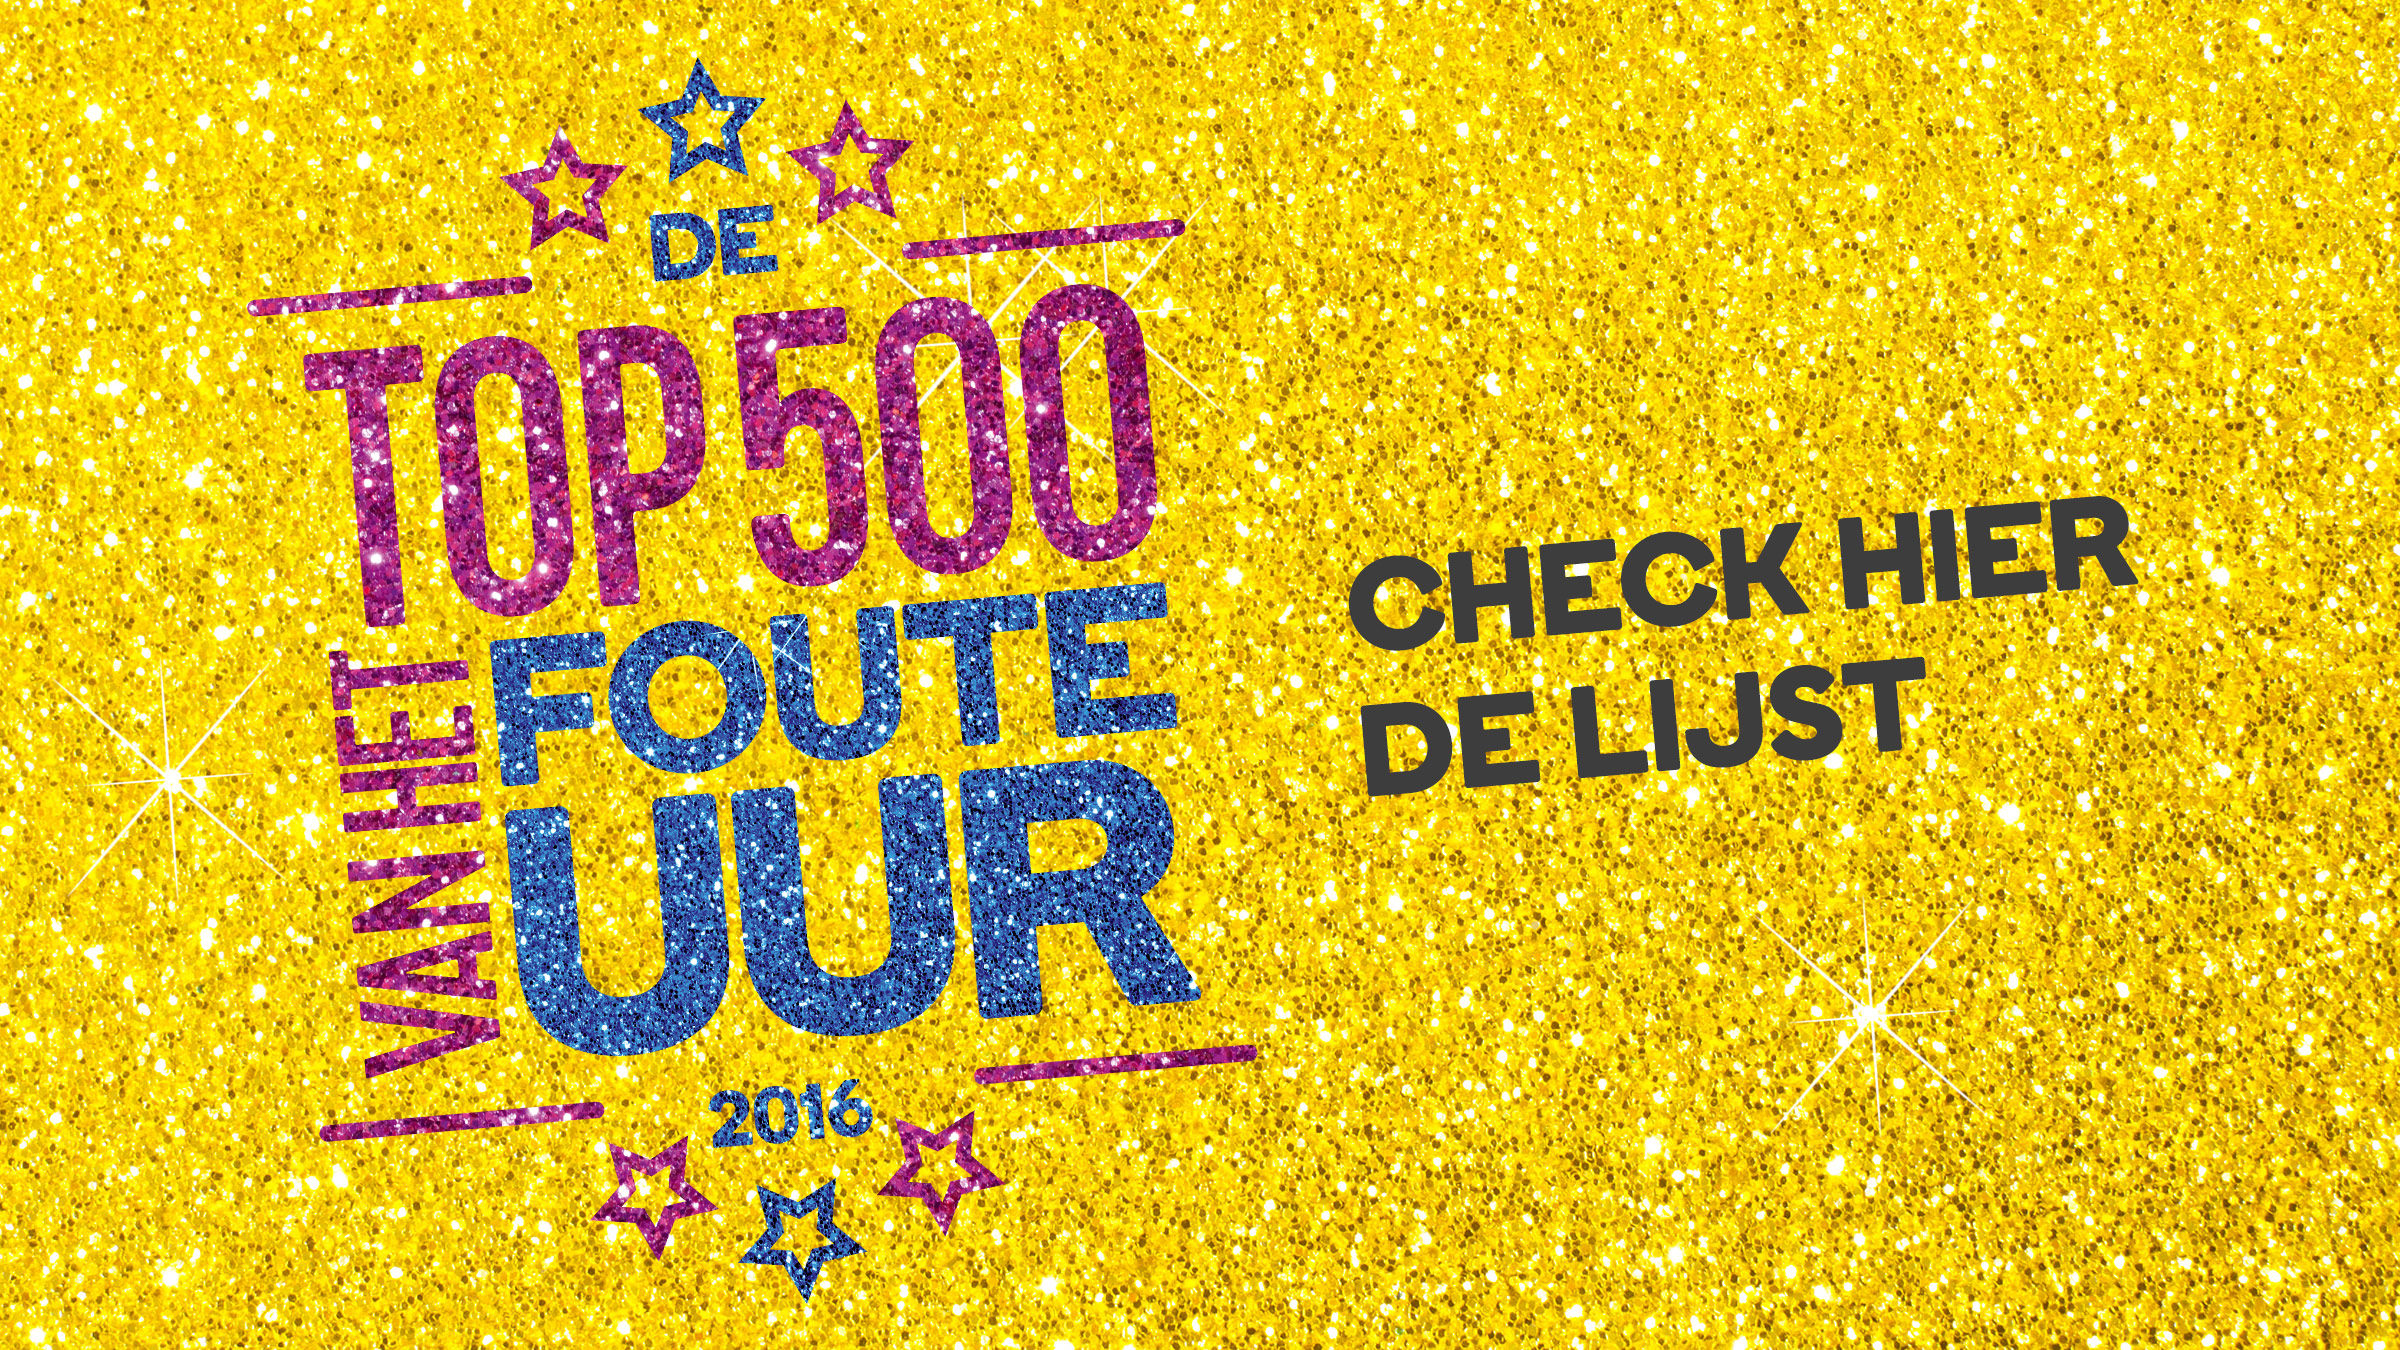 Qmusic teaser top500fout check